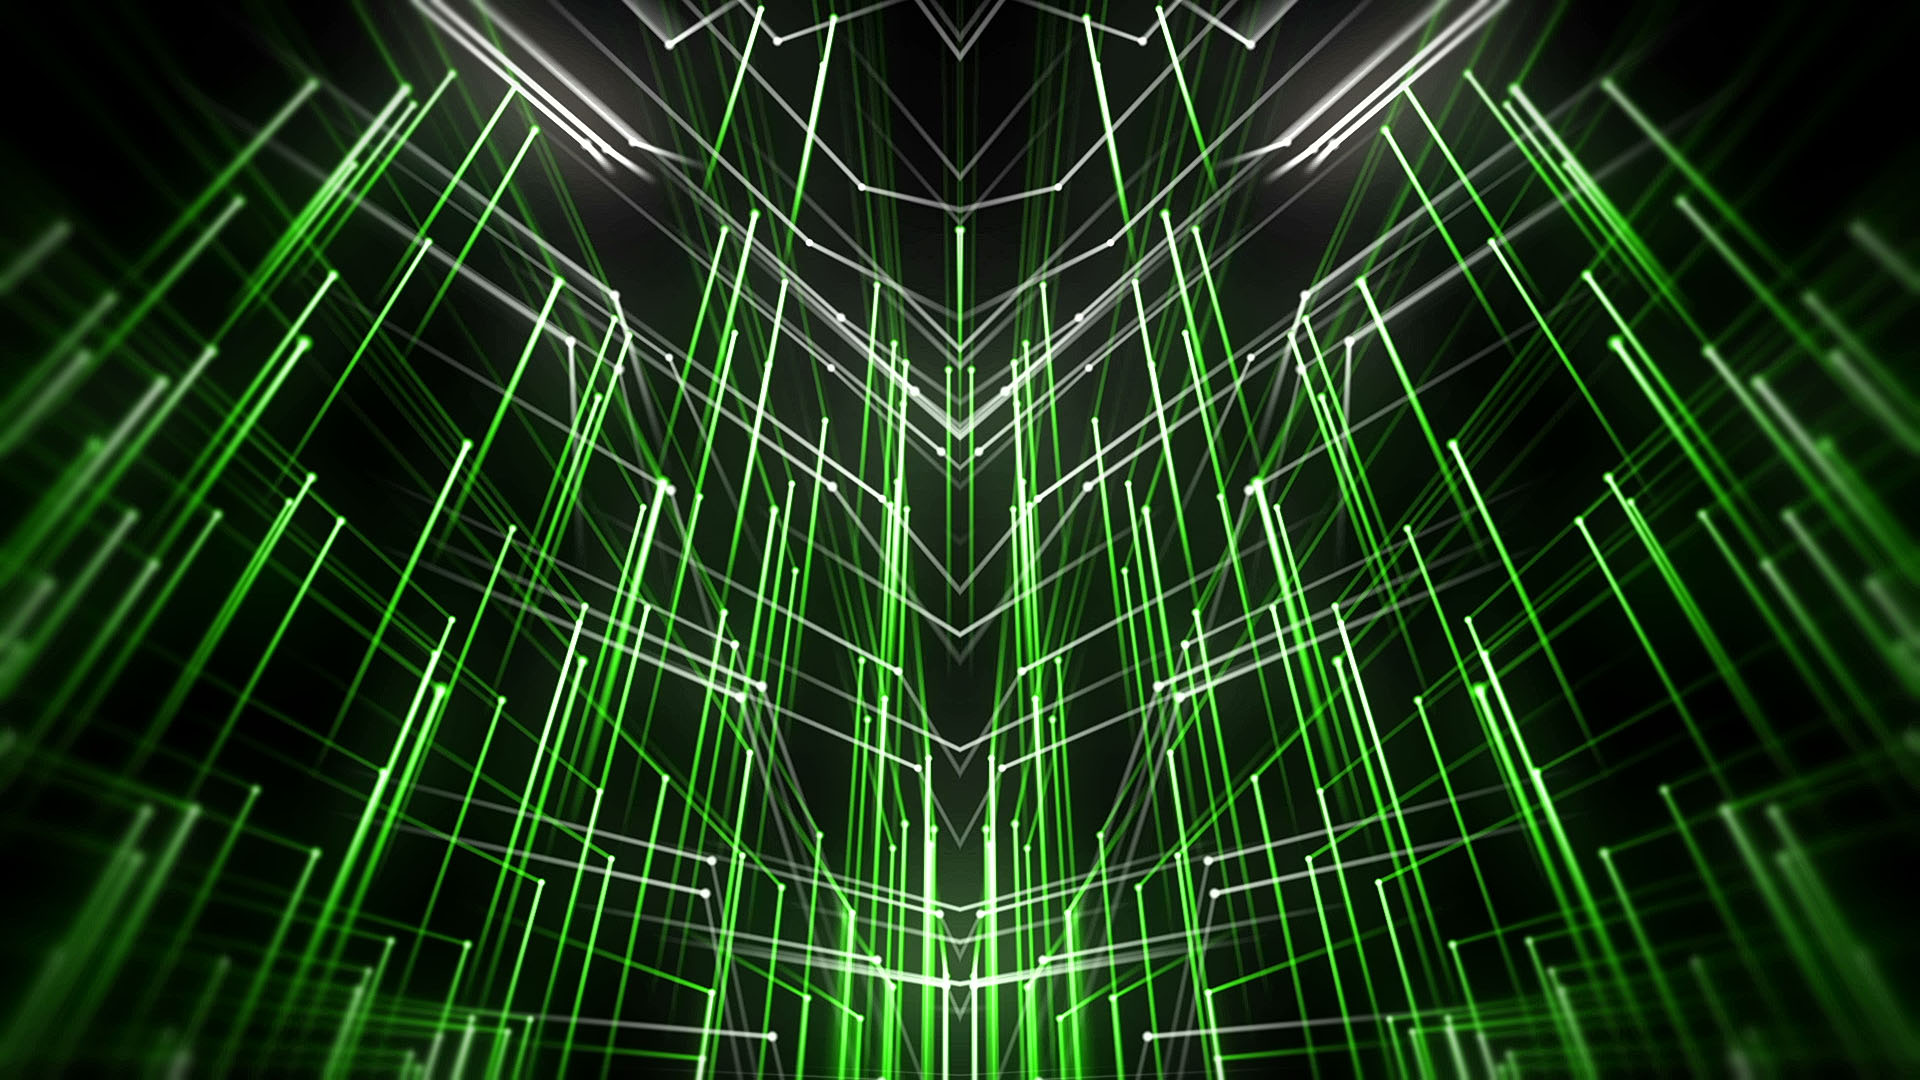 Green Abstract Animated Motion Background star needles_vj_loops_Layer